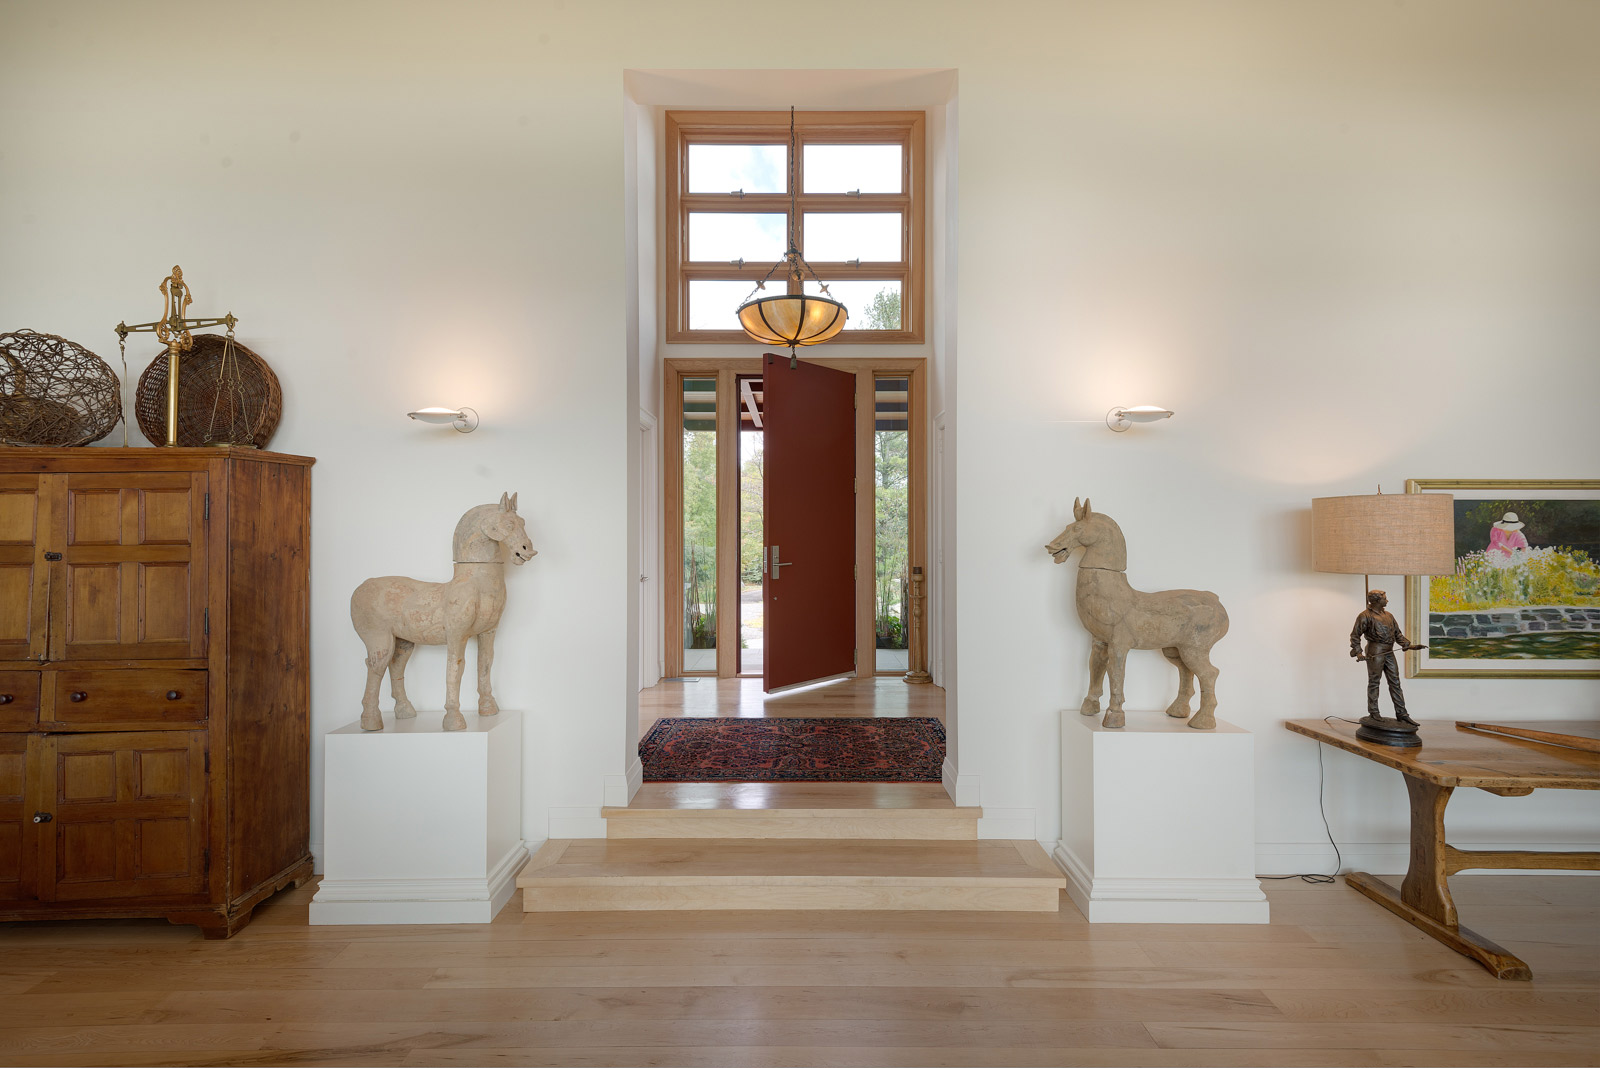 Entryway with large main door with sidelights and transom windows. Clean maple floors and small stair to great room